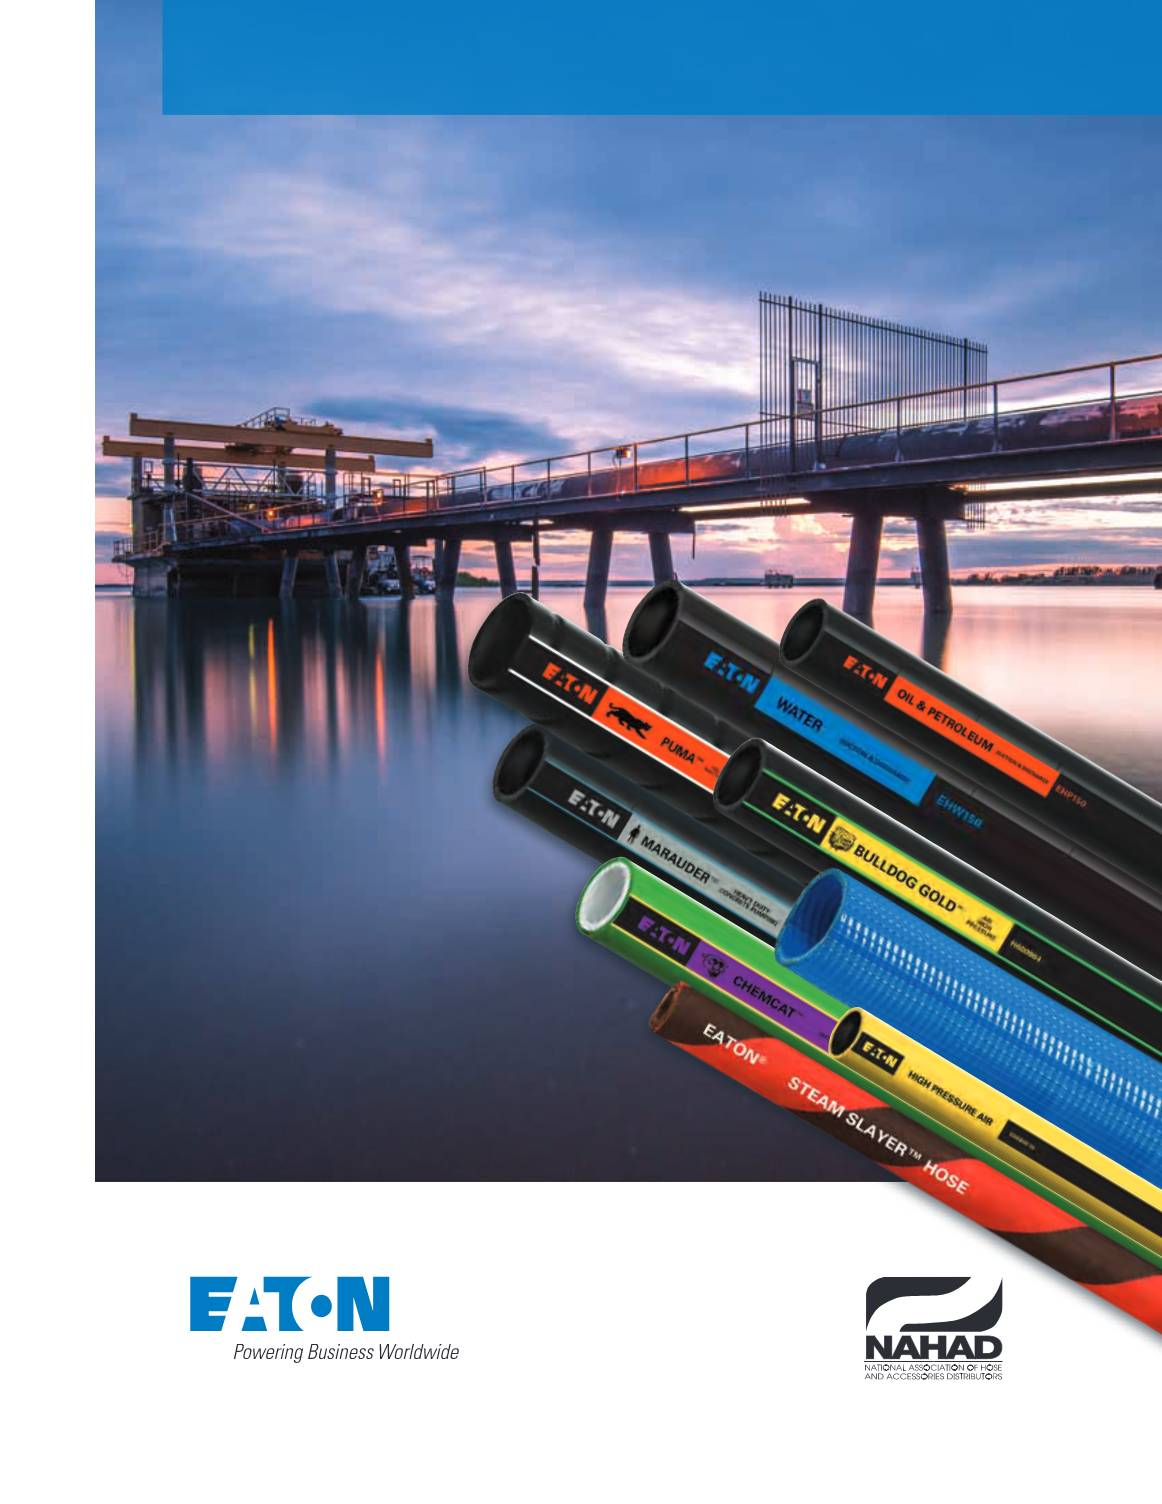 Boston Eaton Industrial Hose Catalog